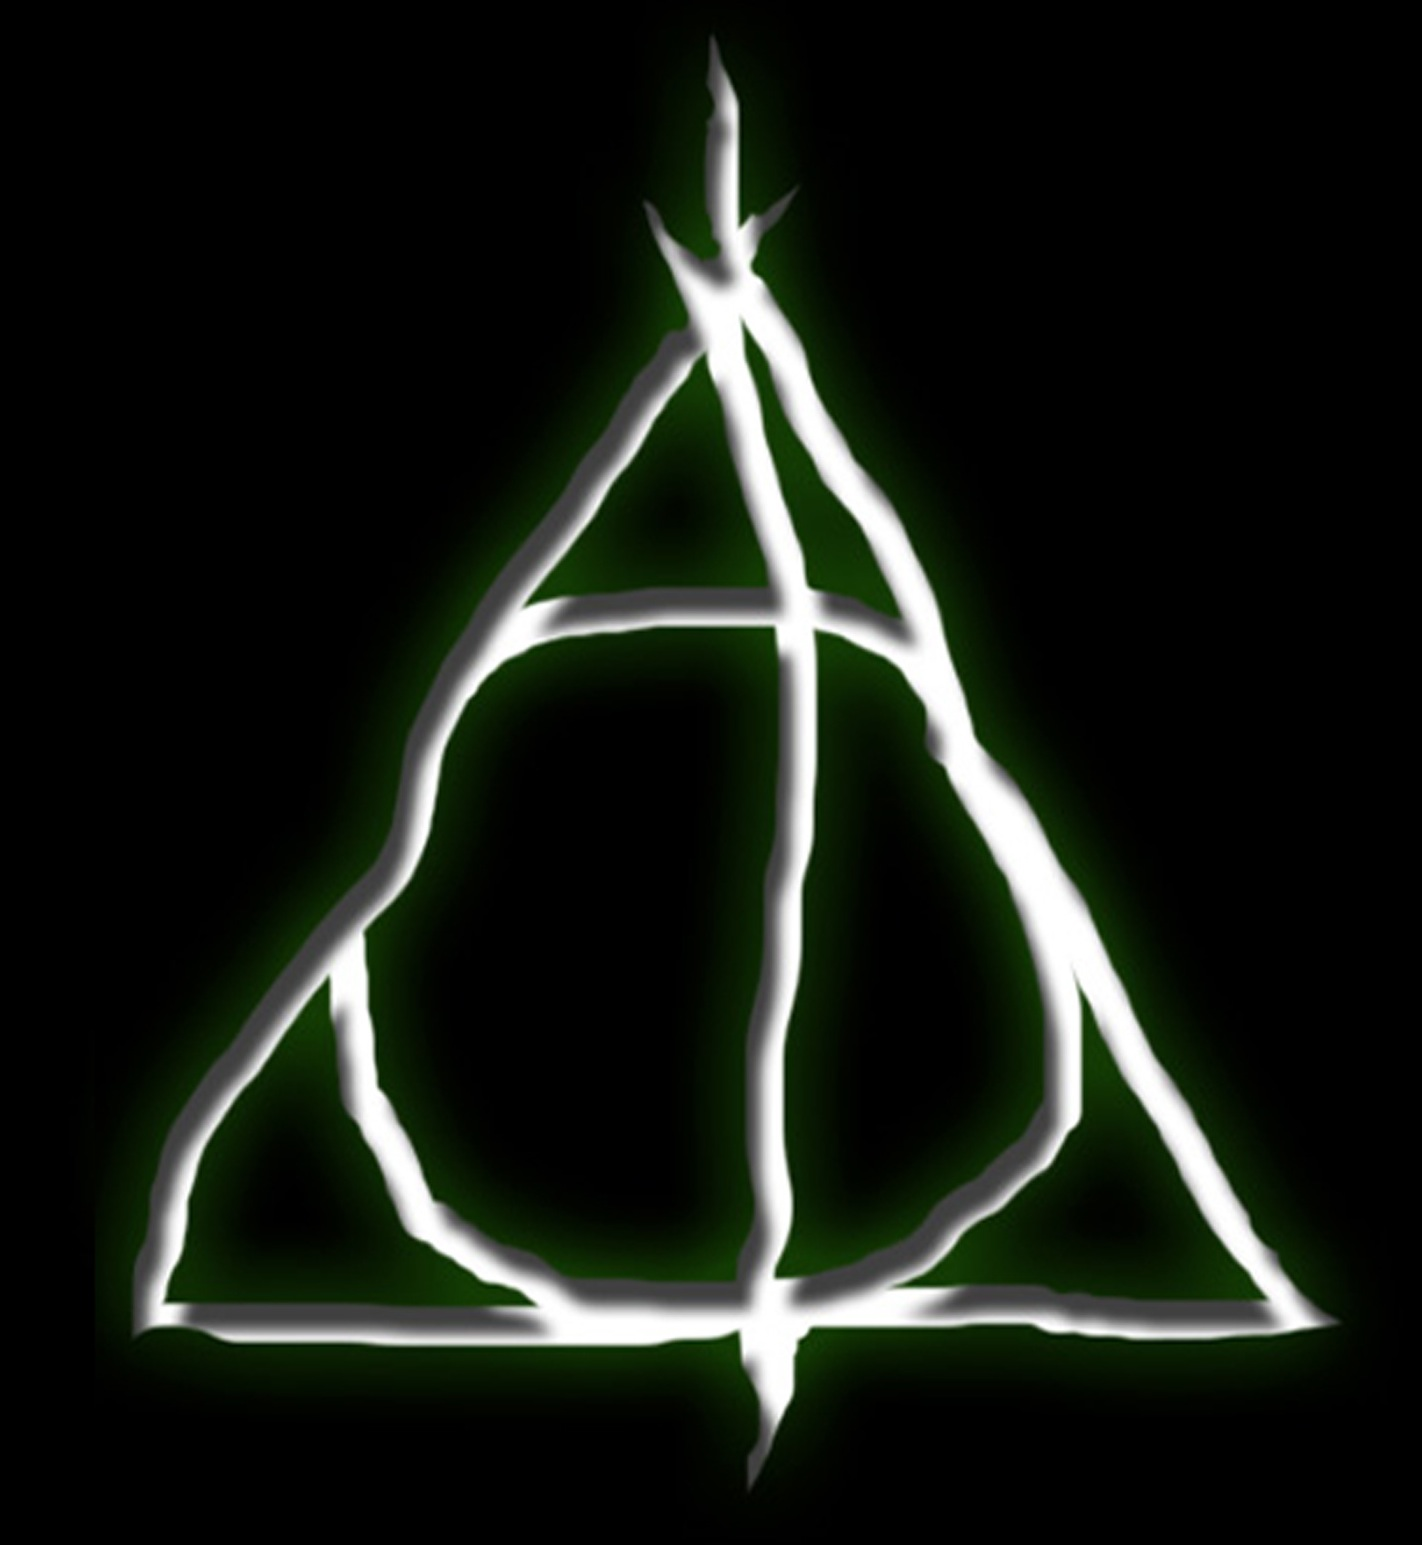 Observations harry potter and the deathly hallows part 1 harry potter and the deathly hallows part 1 biocorpaavc Images